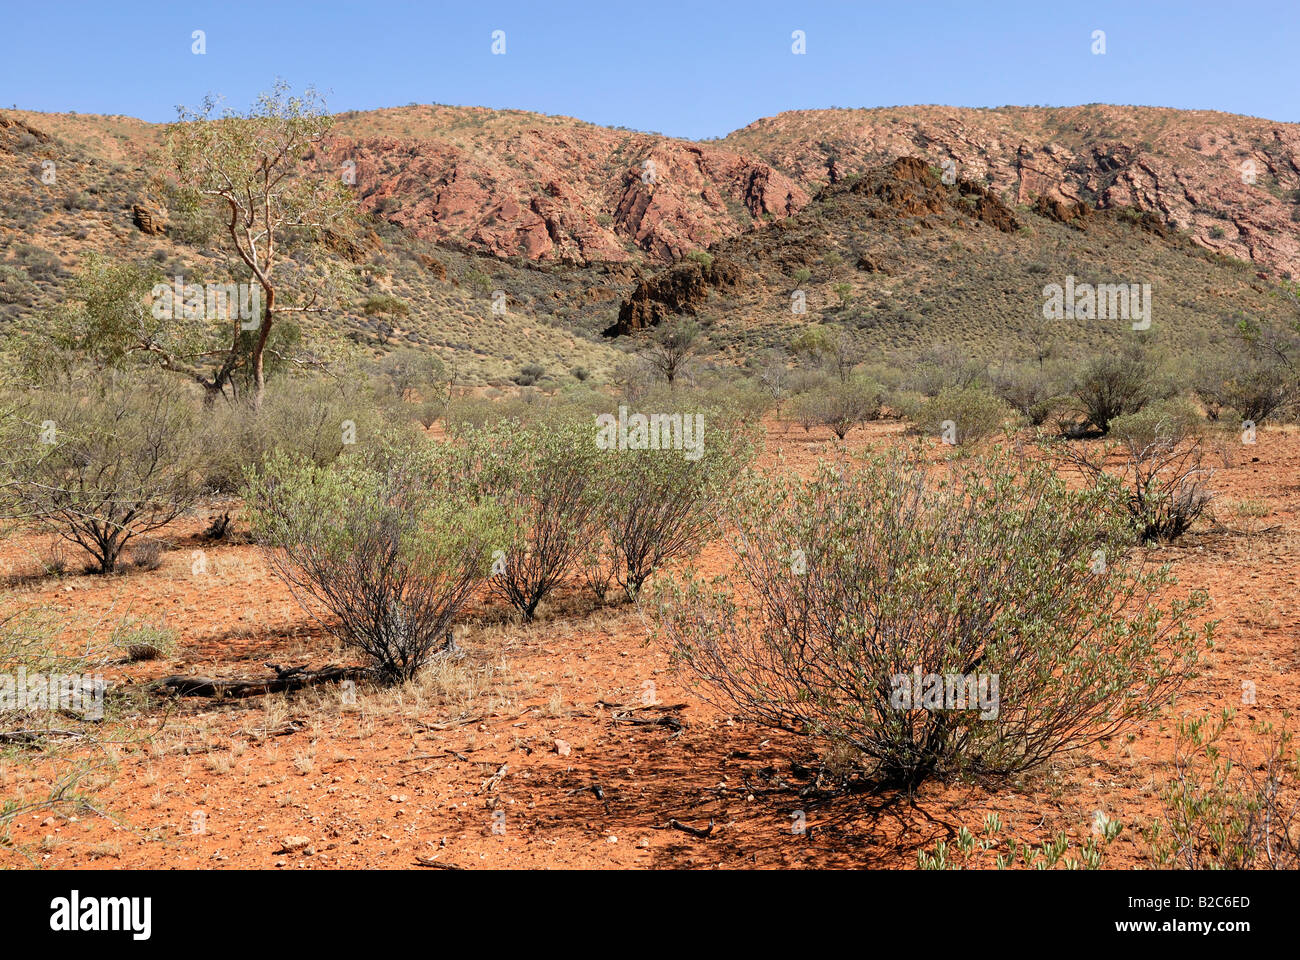 Outback landscape, East Macdonnell Ranges, Northern Territory, Australia - Stock Image